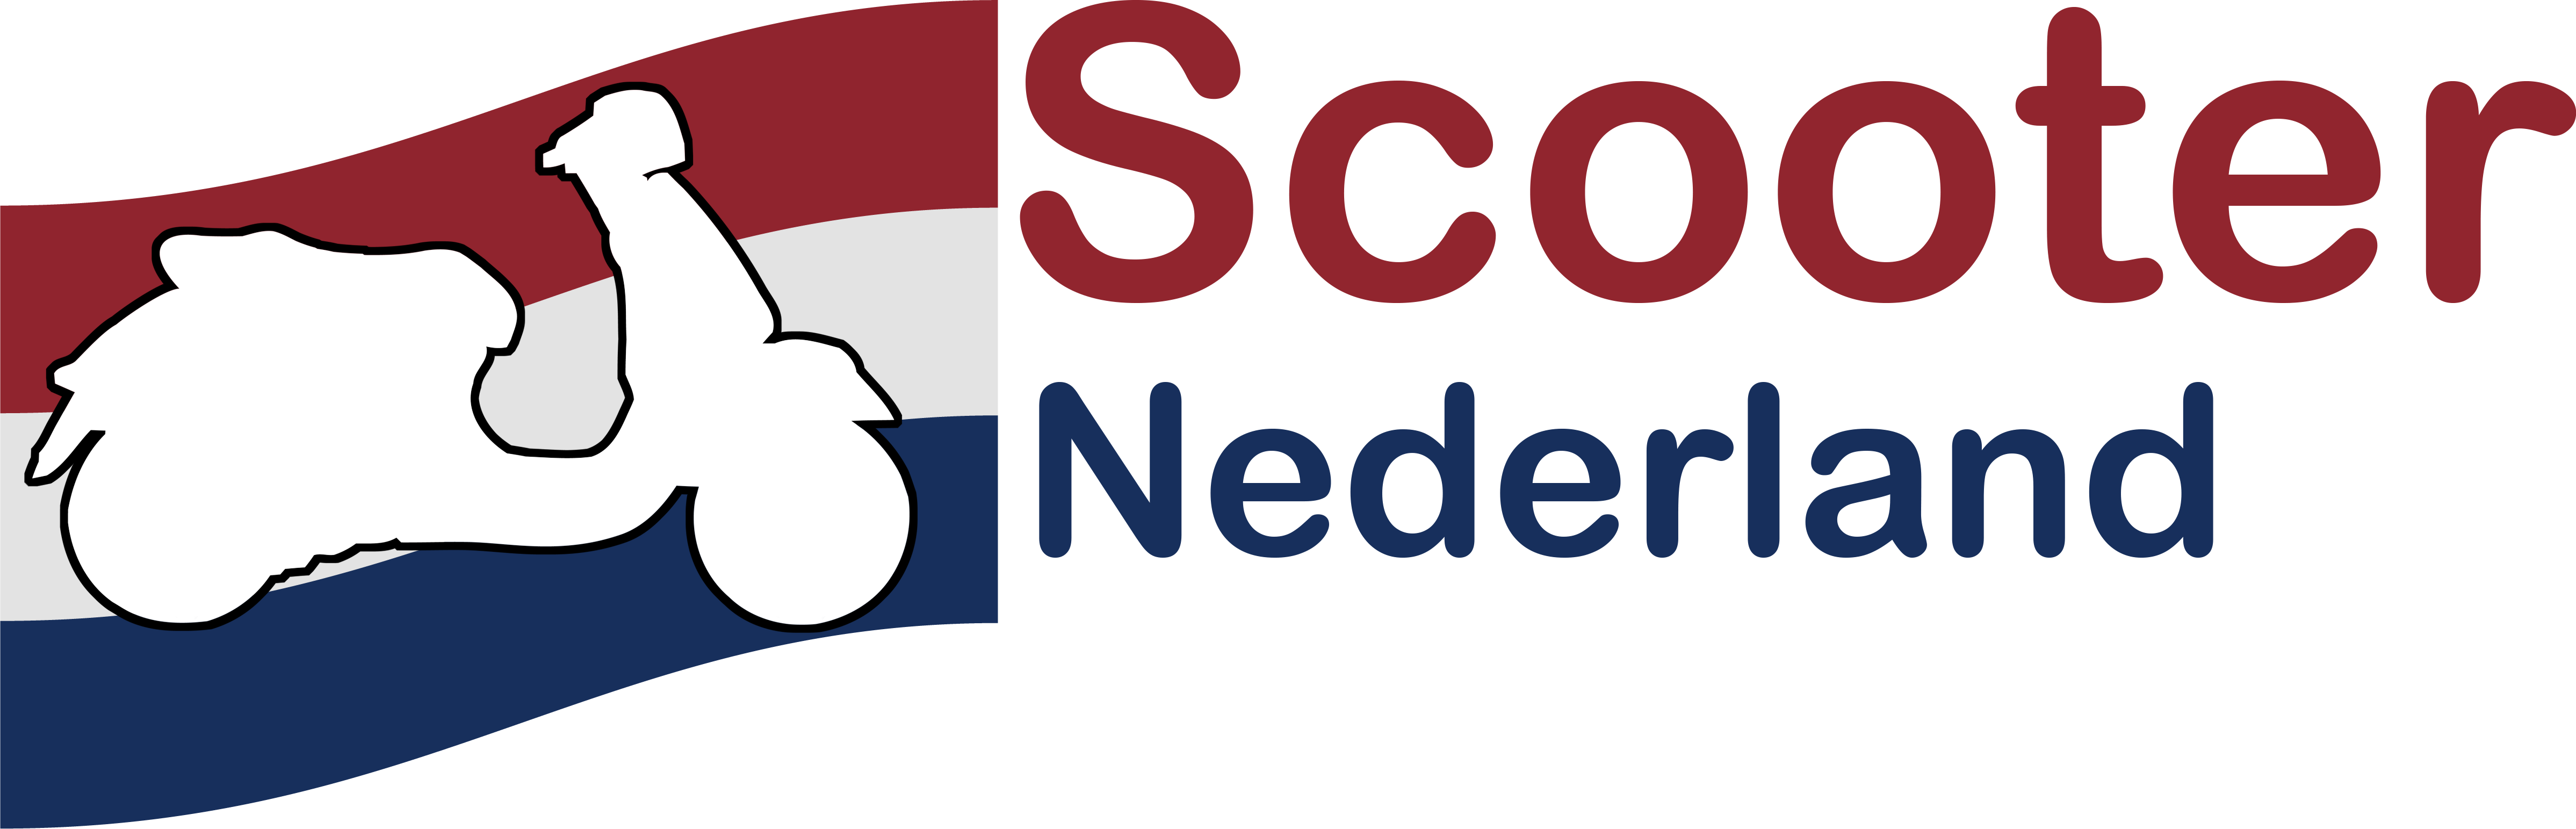 Scooter NL logo